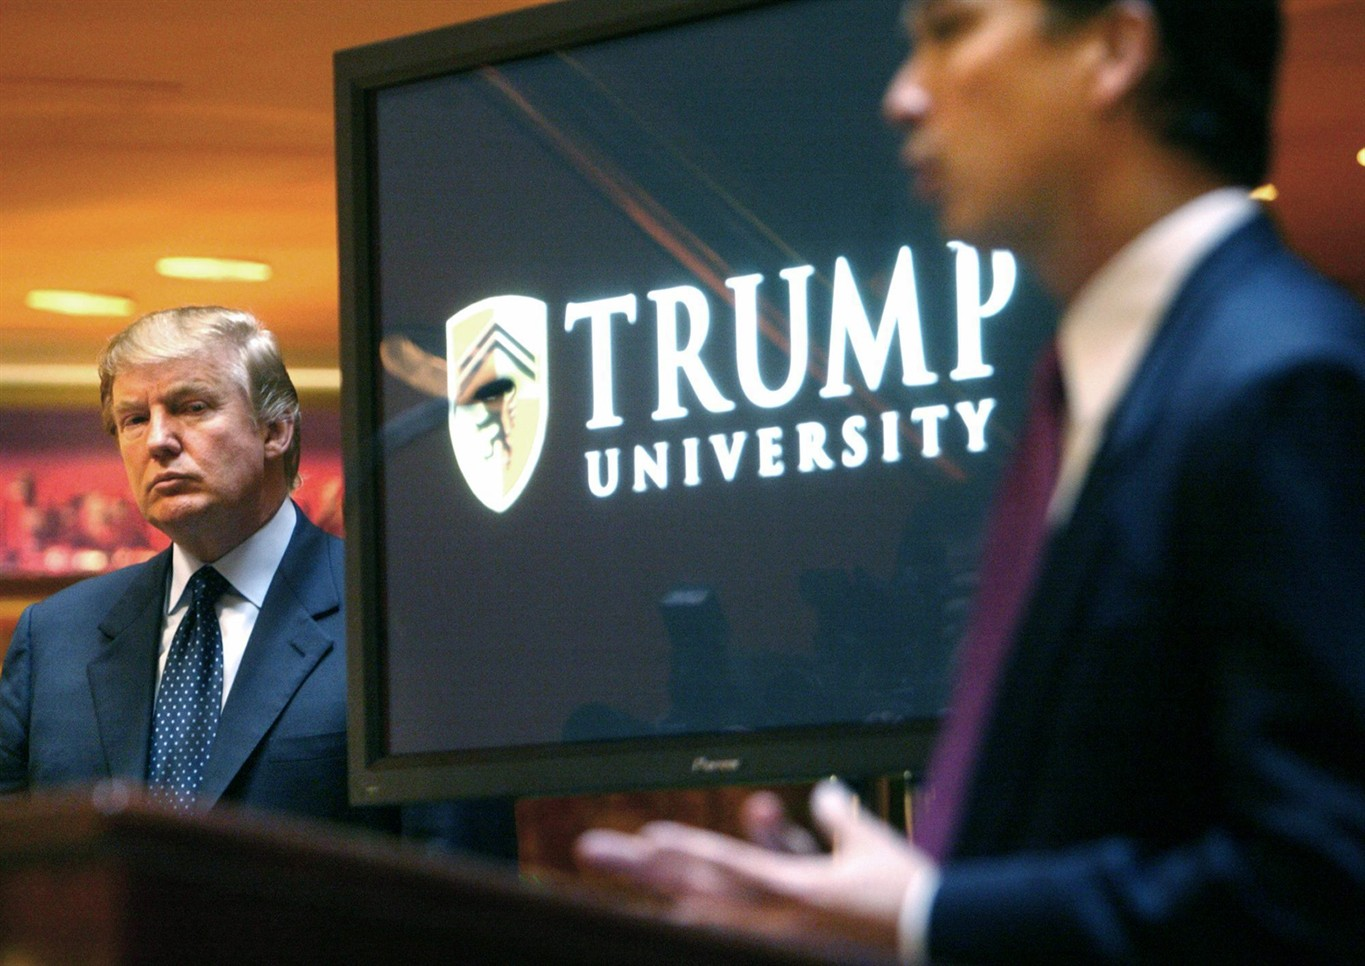 Trump quickly settles university lawsuits after a long fight